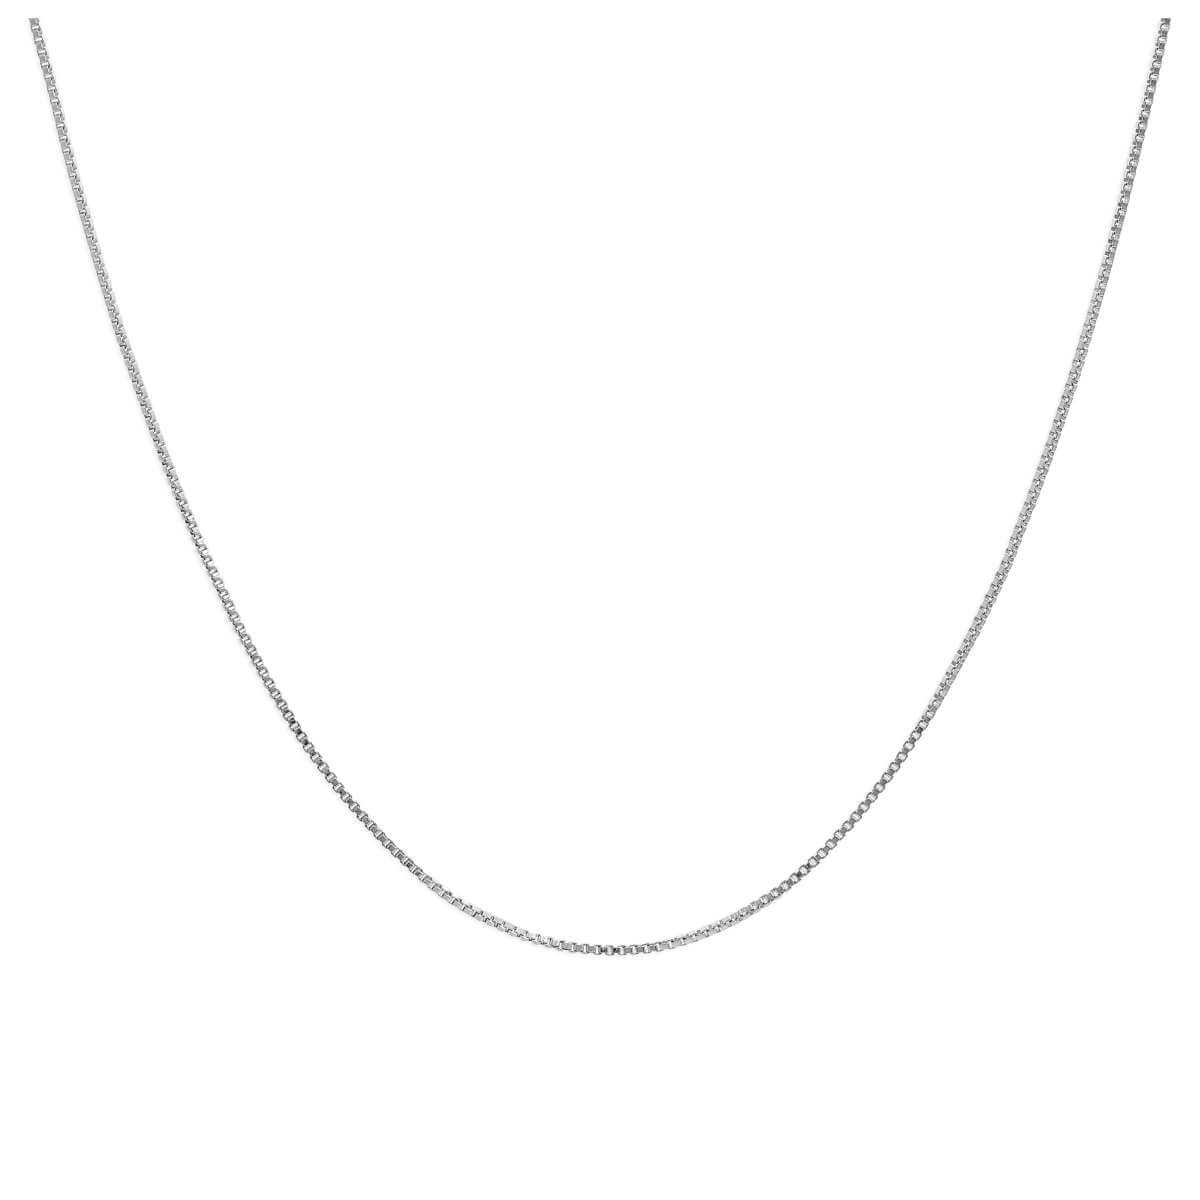 Sterling Silver Slider Clasp Box Chain any size up to 24 Inches